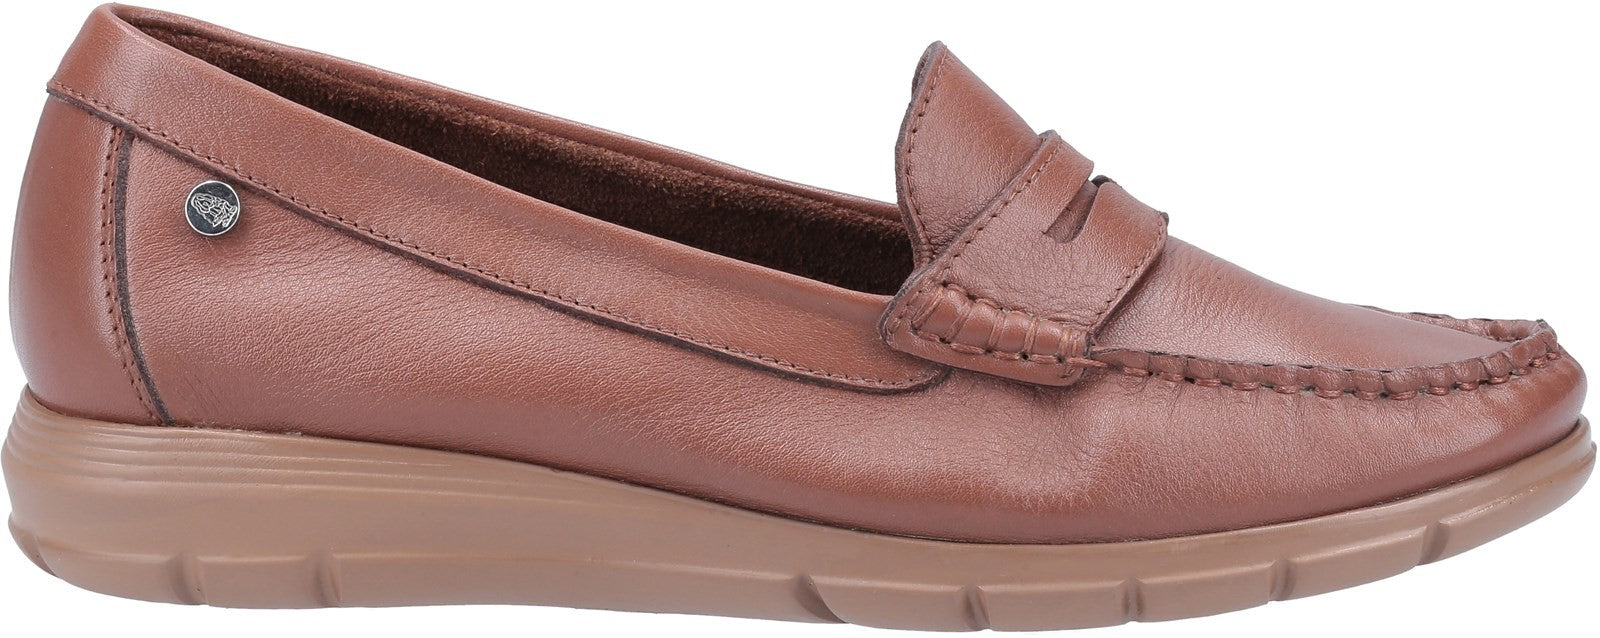 TAN Paige Slip On Shoes